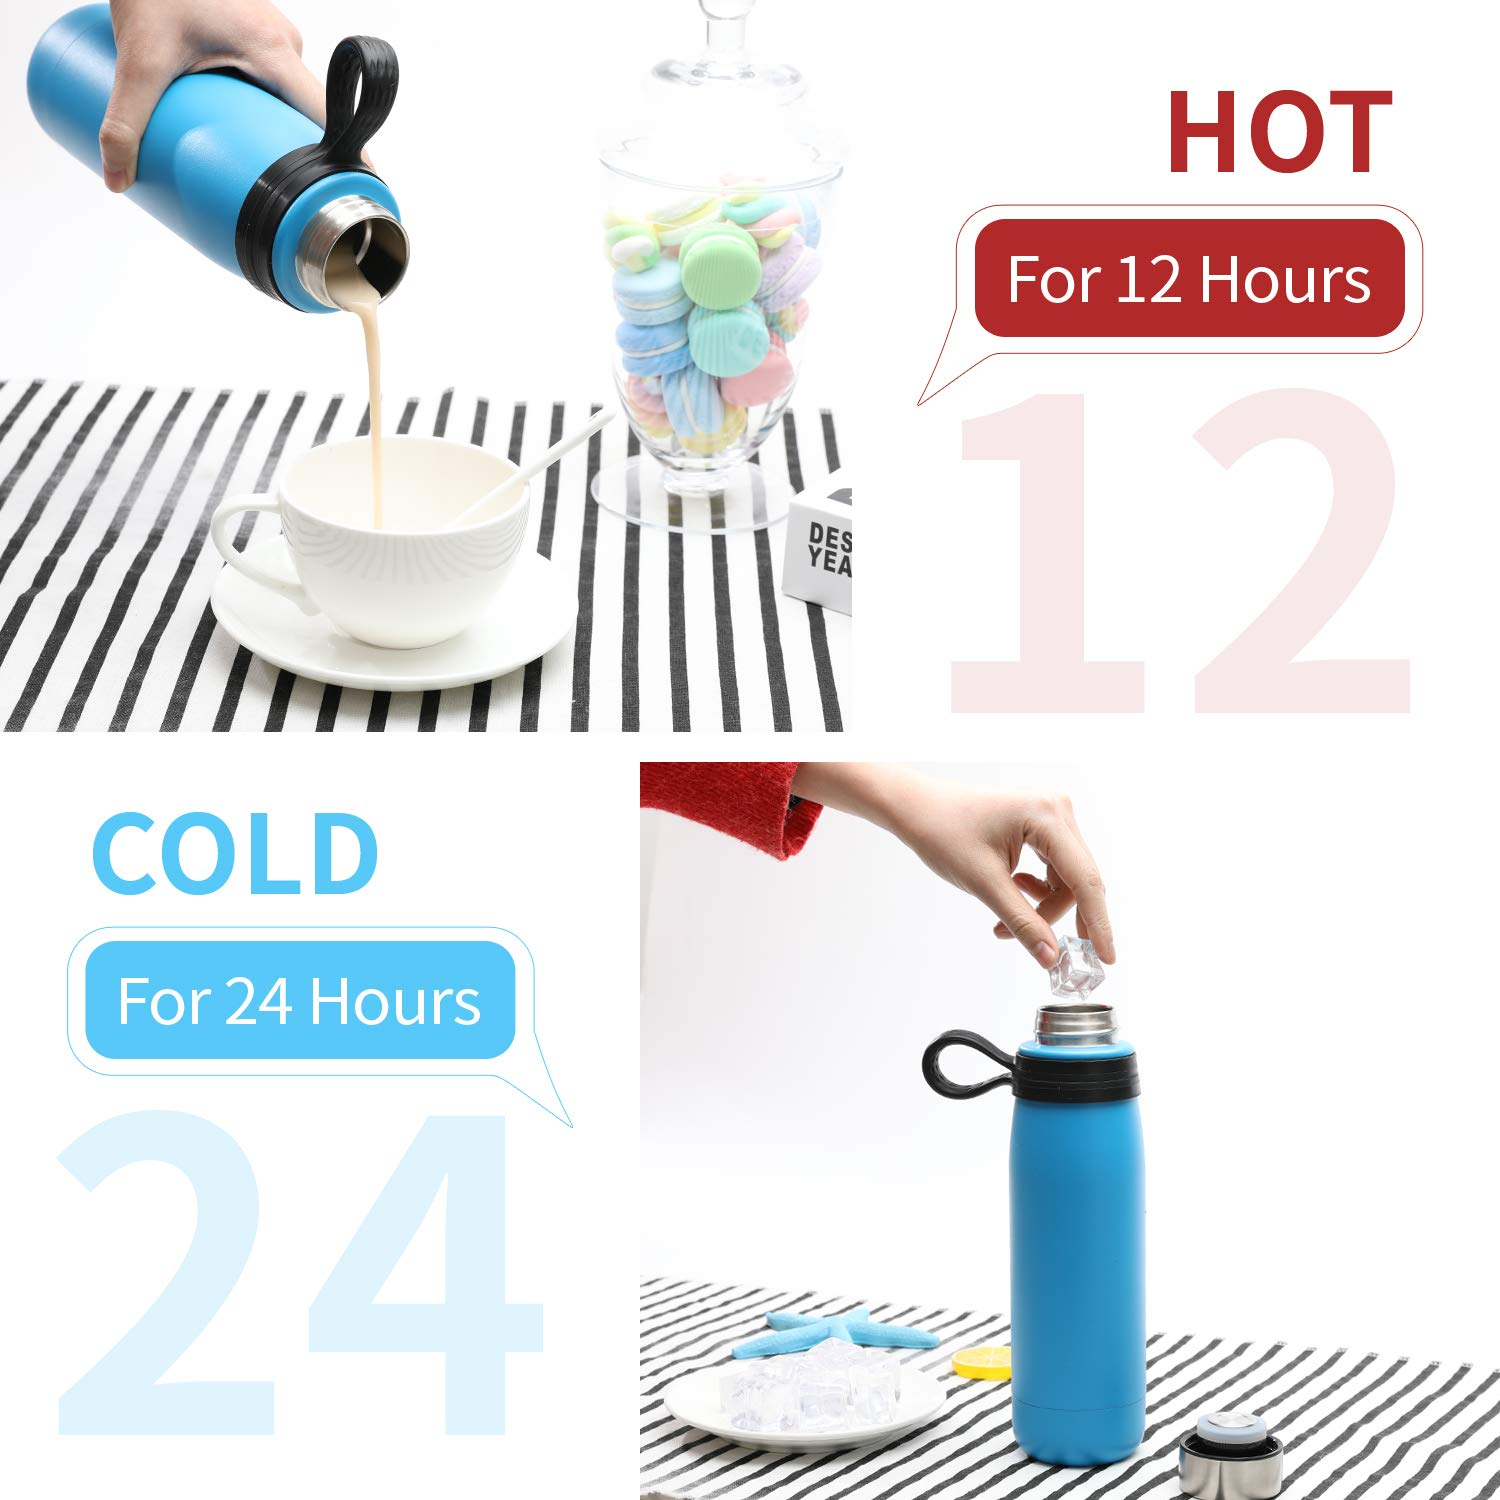 Hot 12 Hours 3Years Warranty 18 oz 530ml New Designed LeakProof 18//8 Stainless Steel Vacuum Insulated Double Wall Drink Bottle Wide Mouth BPA-Free Sports Water Bottle with Removable Silicone Handle Keeps Cold 24 Hours